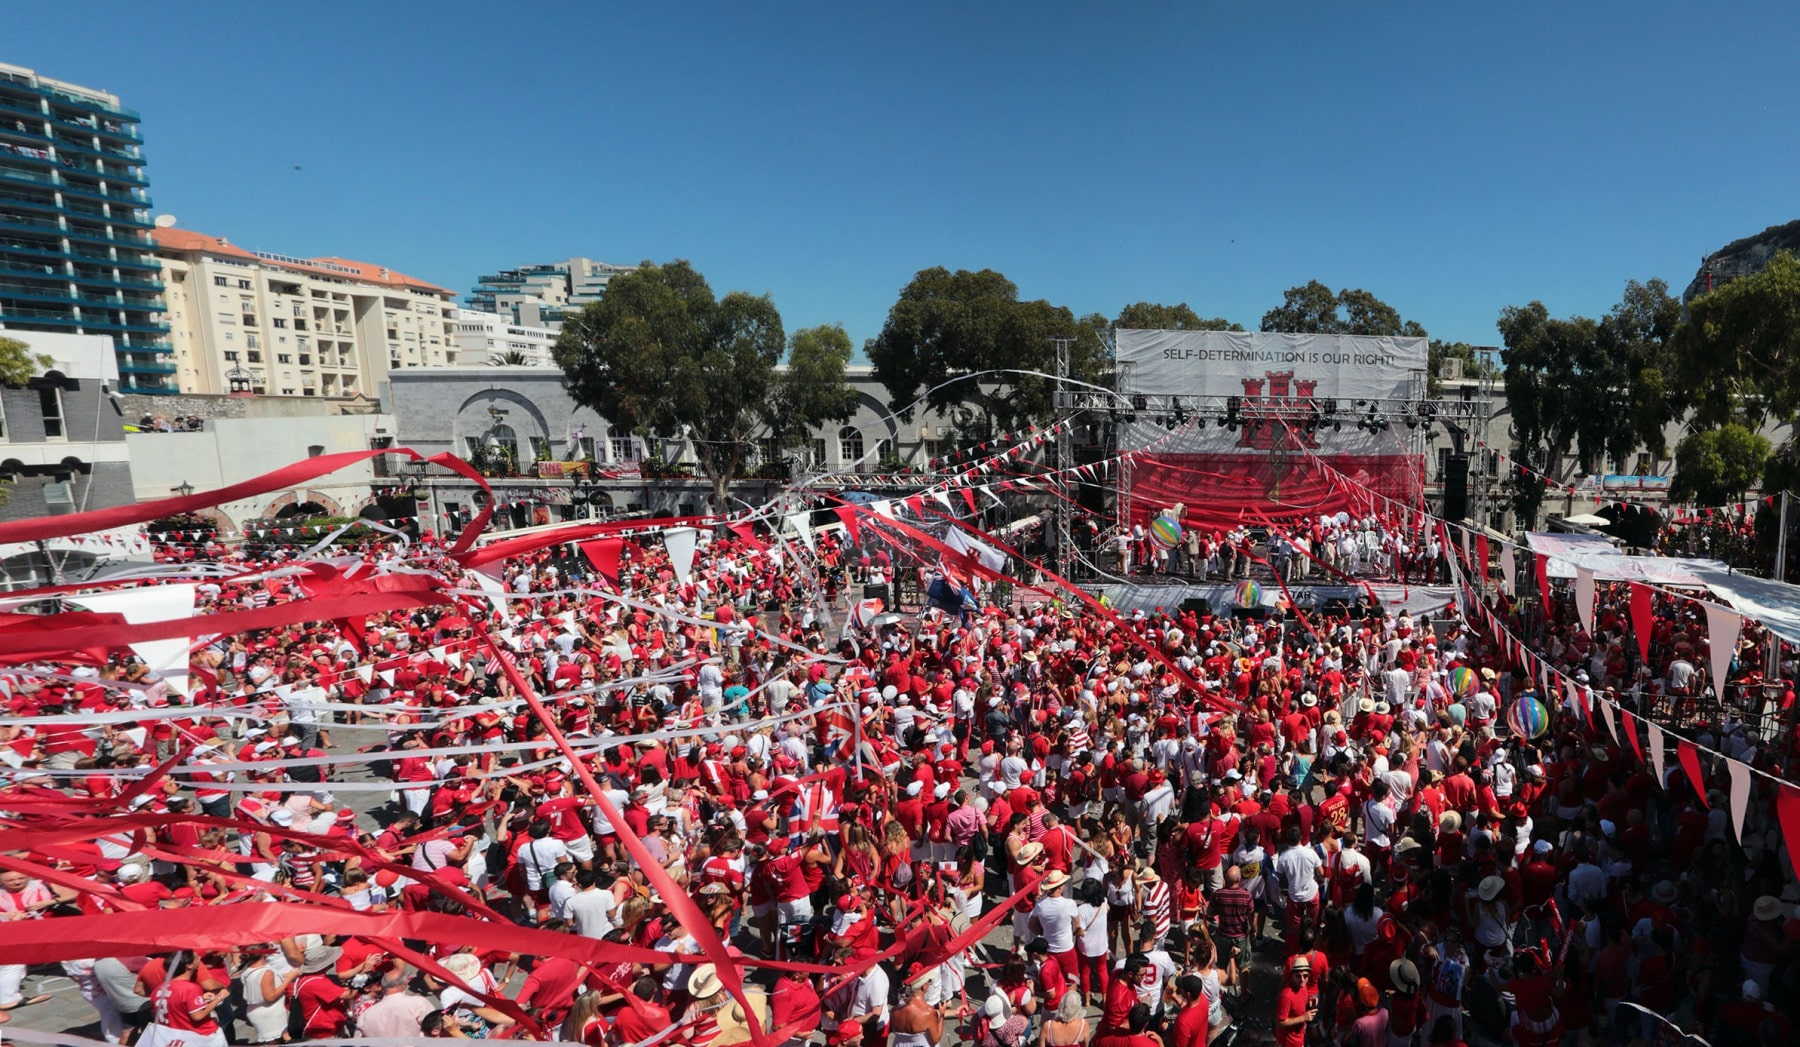 160910-national-day-gibraltar-2016-89_29314630190_o